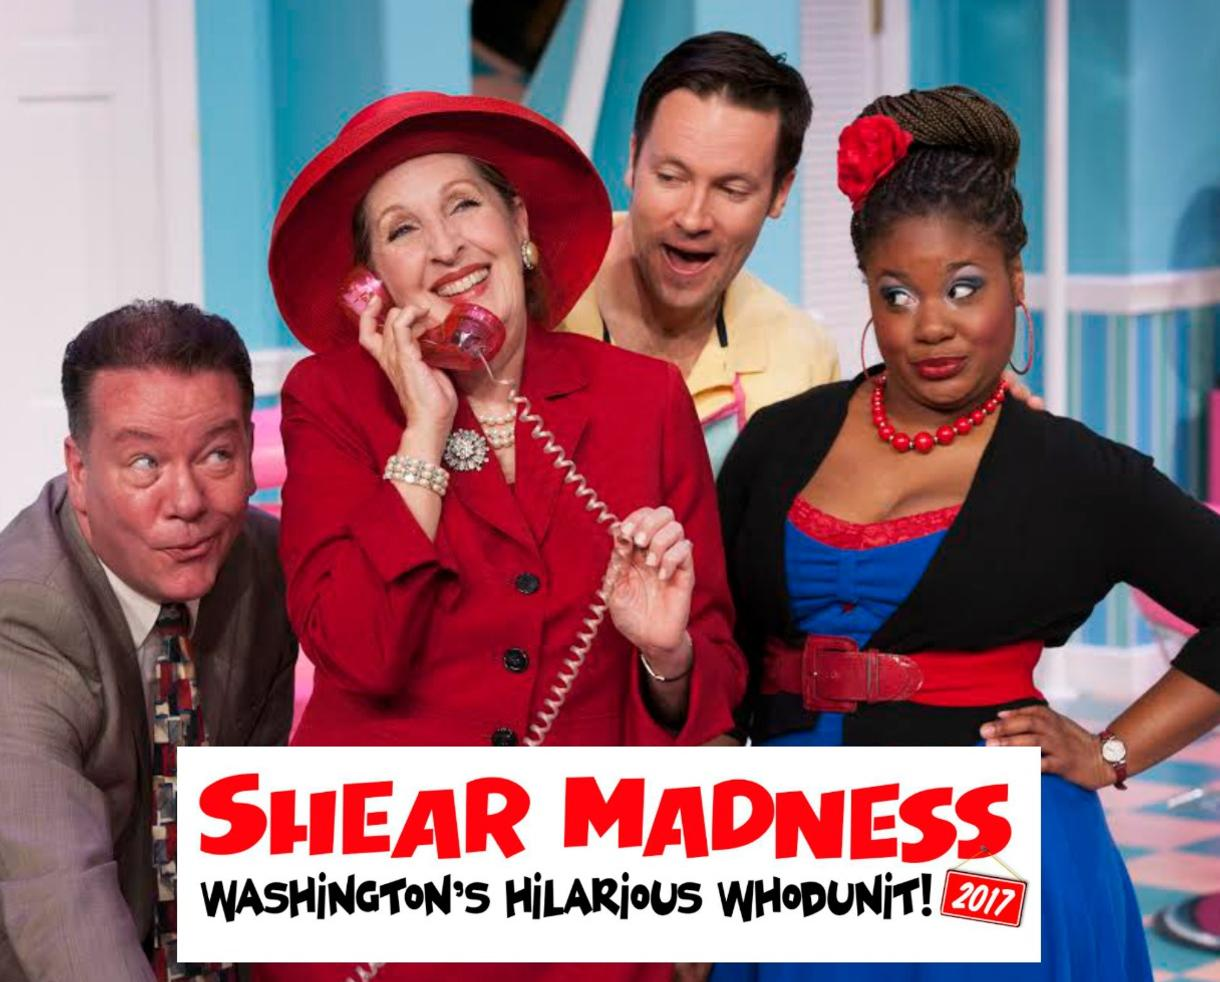 $27 for Shear Madness at The Kennedy Center - Washington, DC (50% Off!)